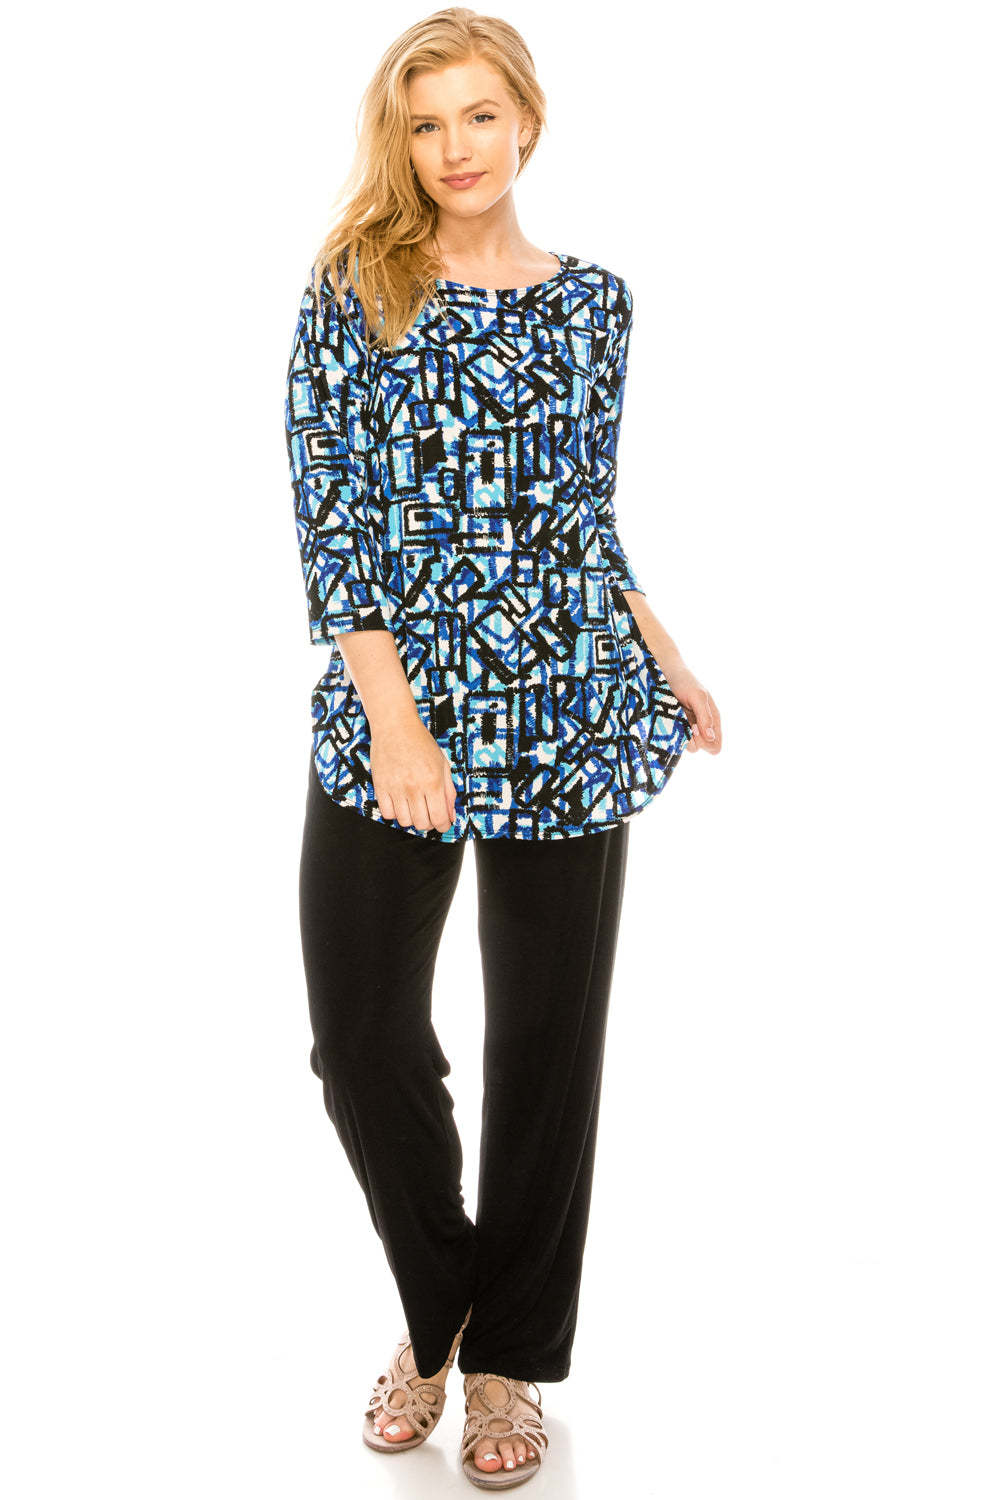 Jostar Women's Stretchy Rounded Bottom Tunic Top Quarter Sleeve Print, 346BN-QP-W196 - Jostar Online